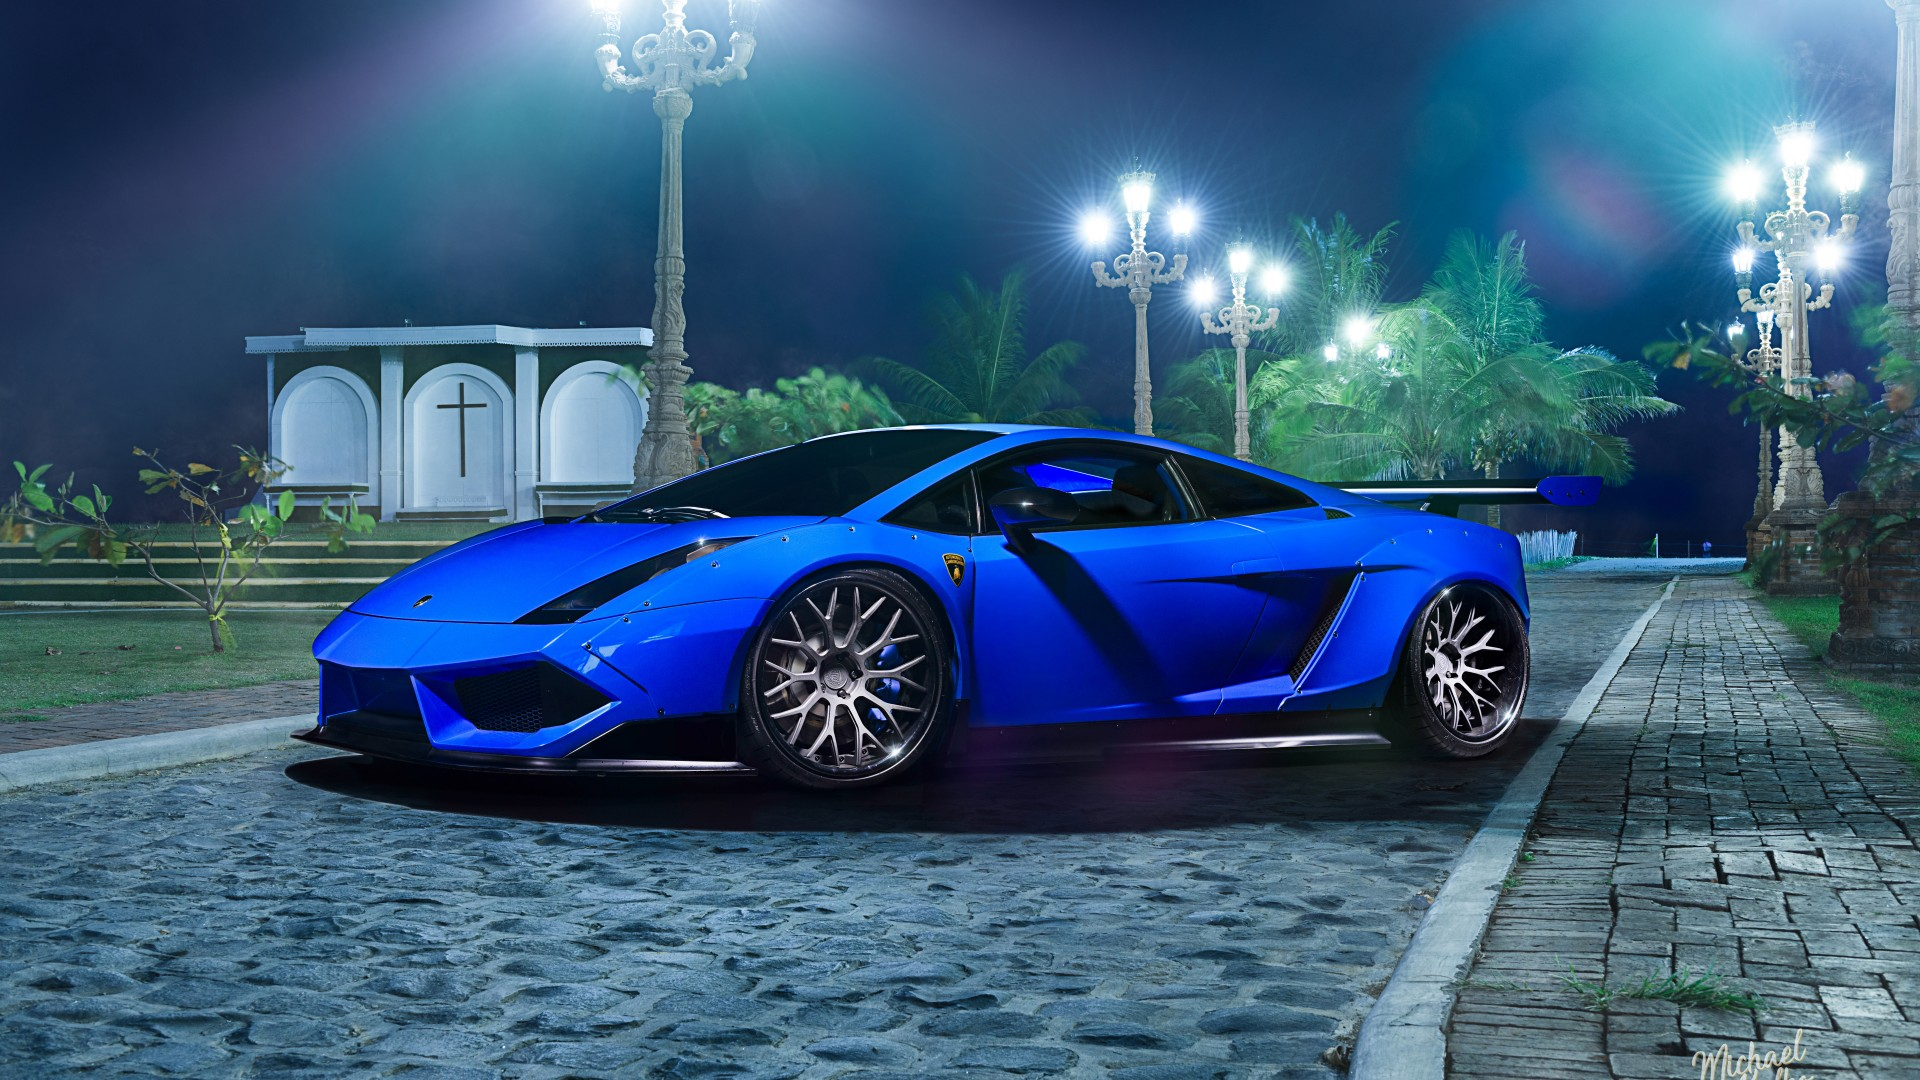 Lamborghini Gallardo 4k 8k Wallpaper Hd Car Wallpapers